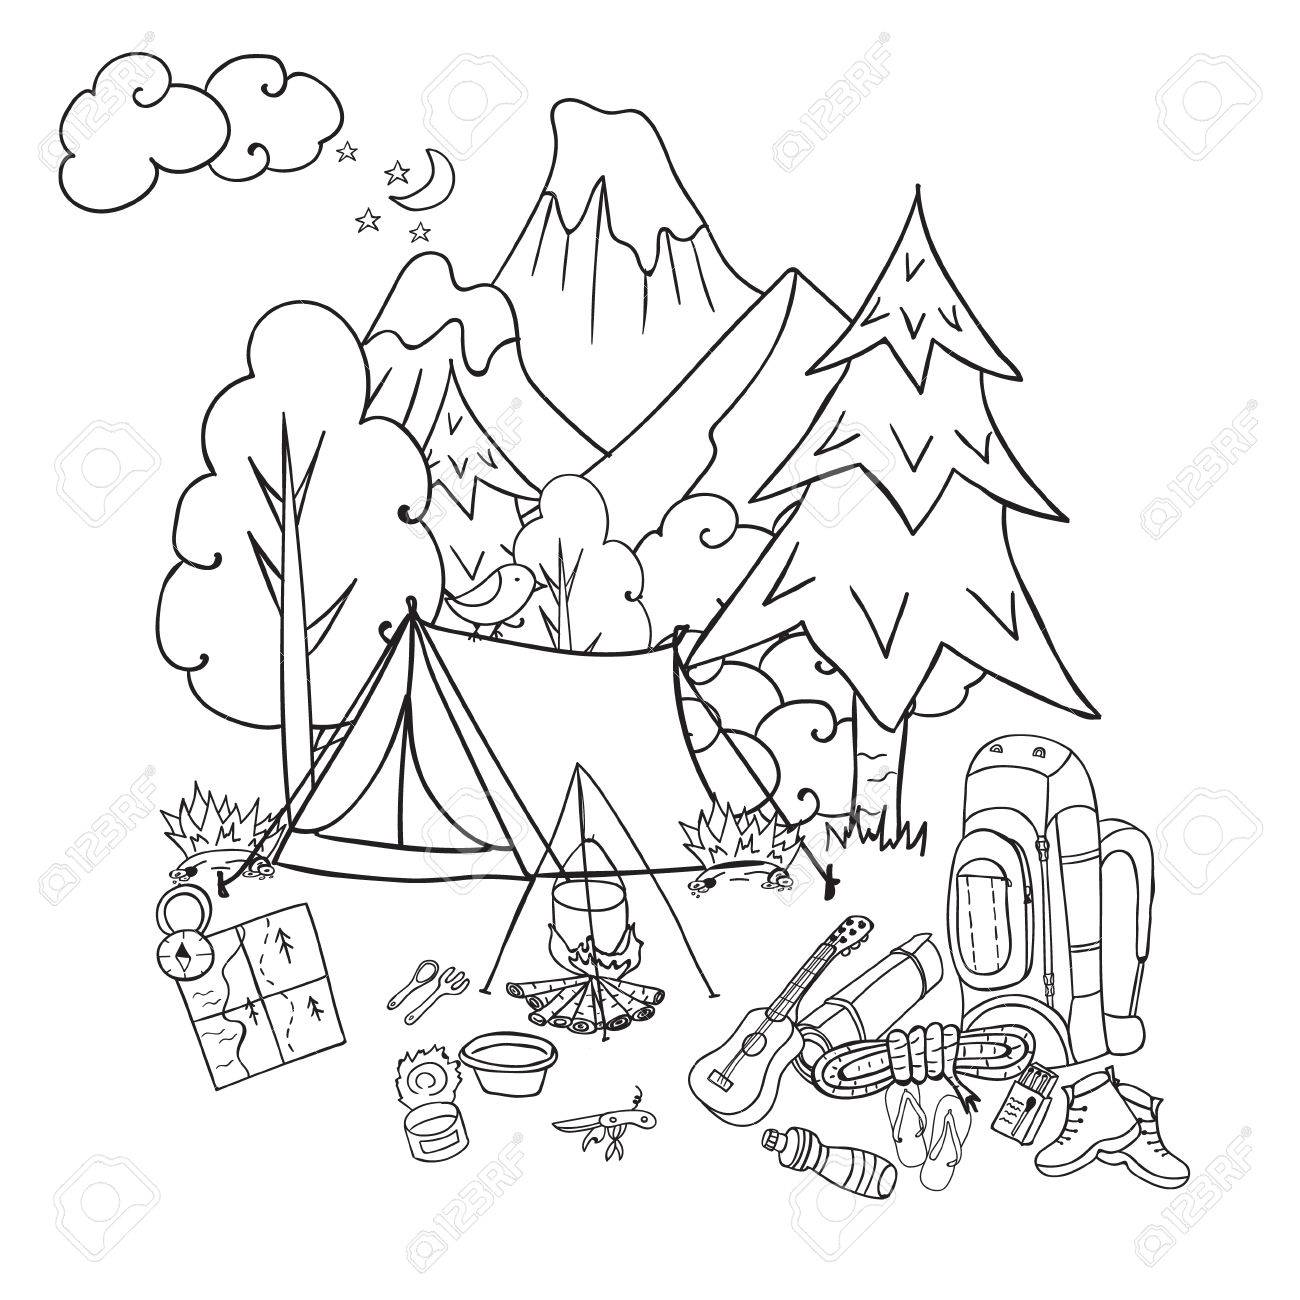 1300x1300 Hiking, Camping And Outdoor Recreation Concept With Camping Tent